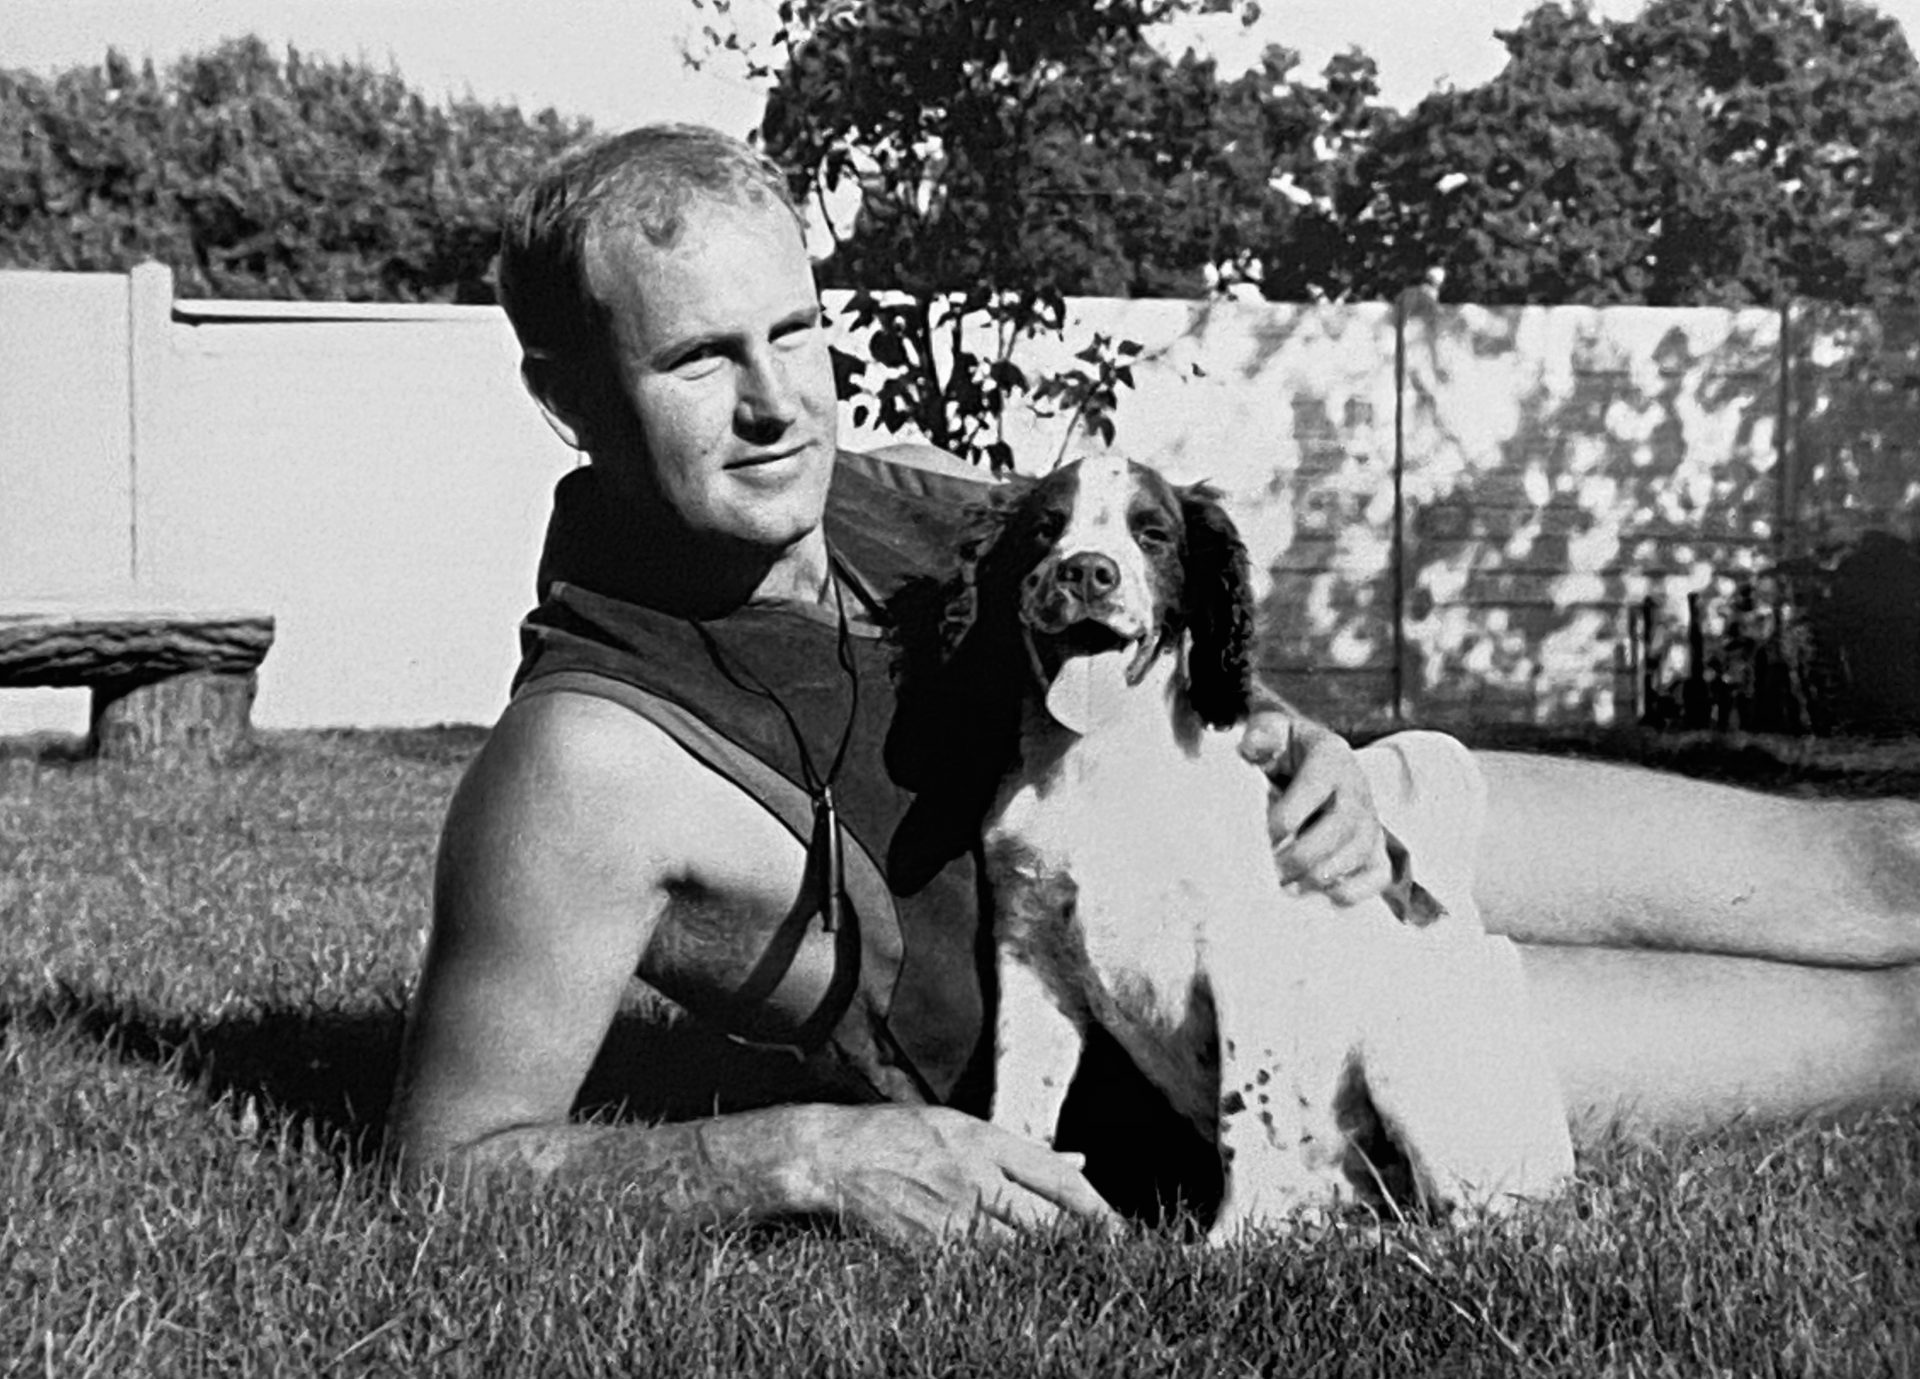 Mark with Tinker the puppy, aged 4 months